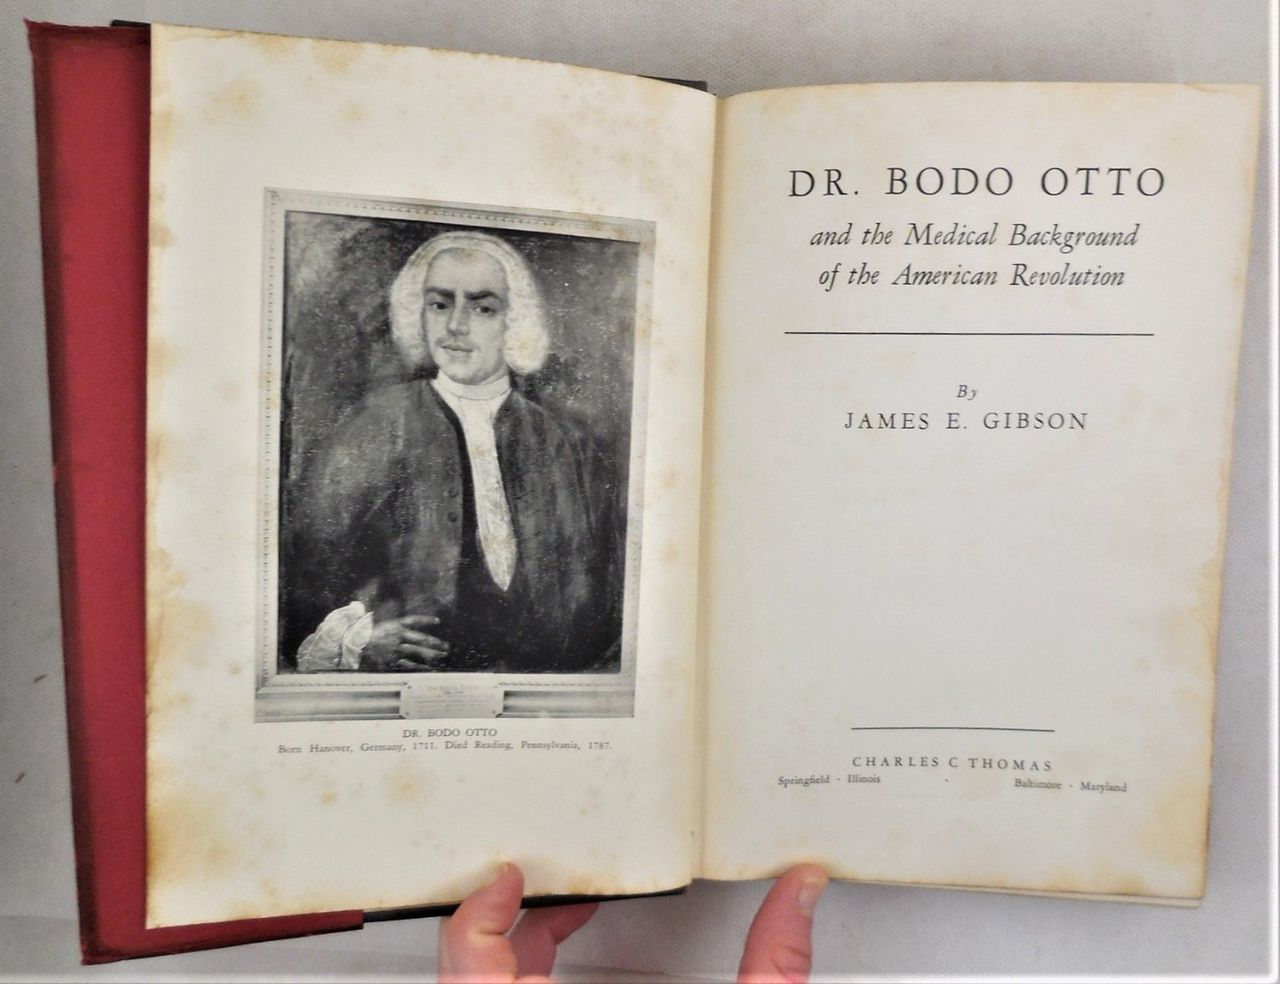 DR. BODO OTTO, by James E. Gibson - 1937 [Signed 1st Ed]